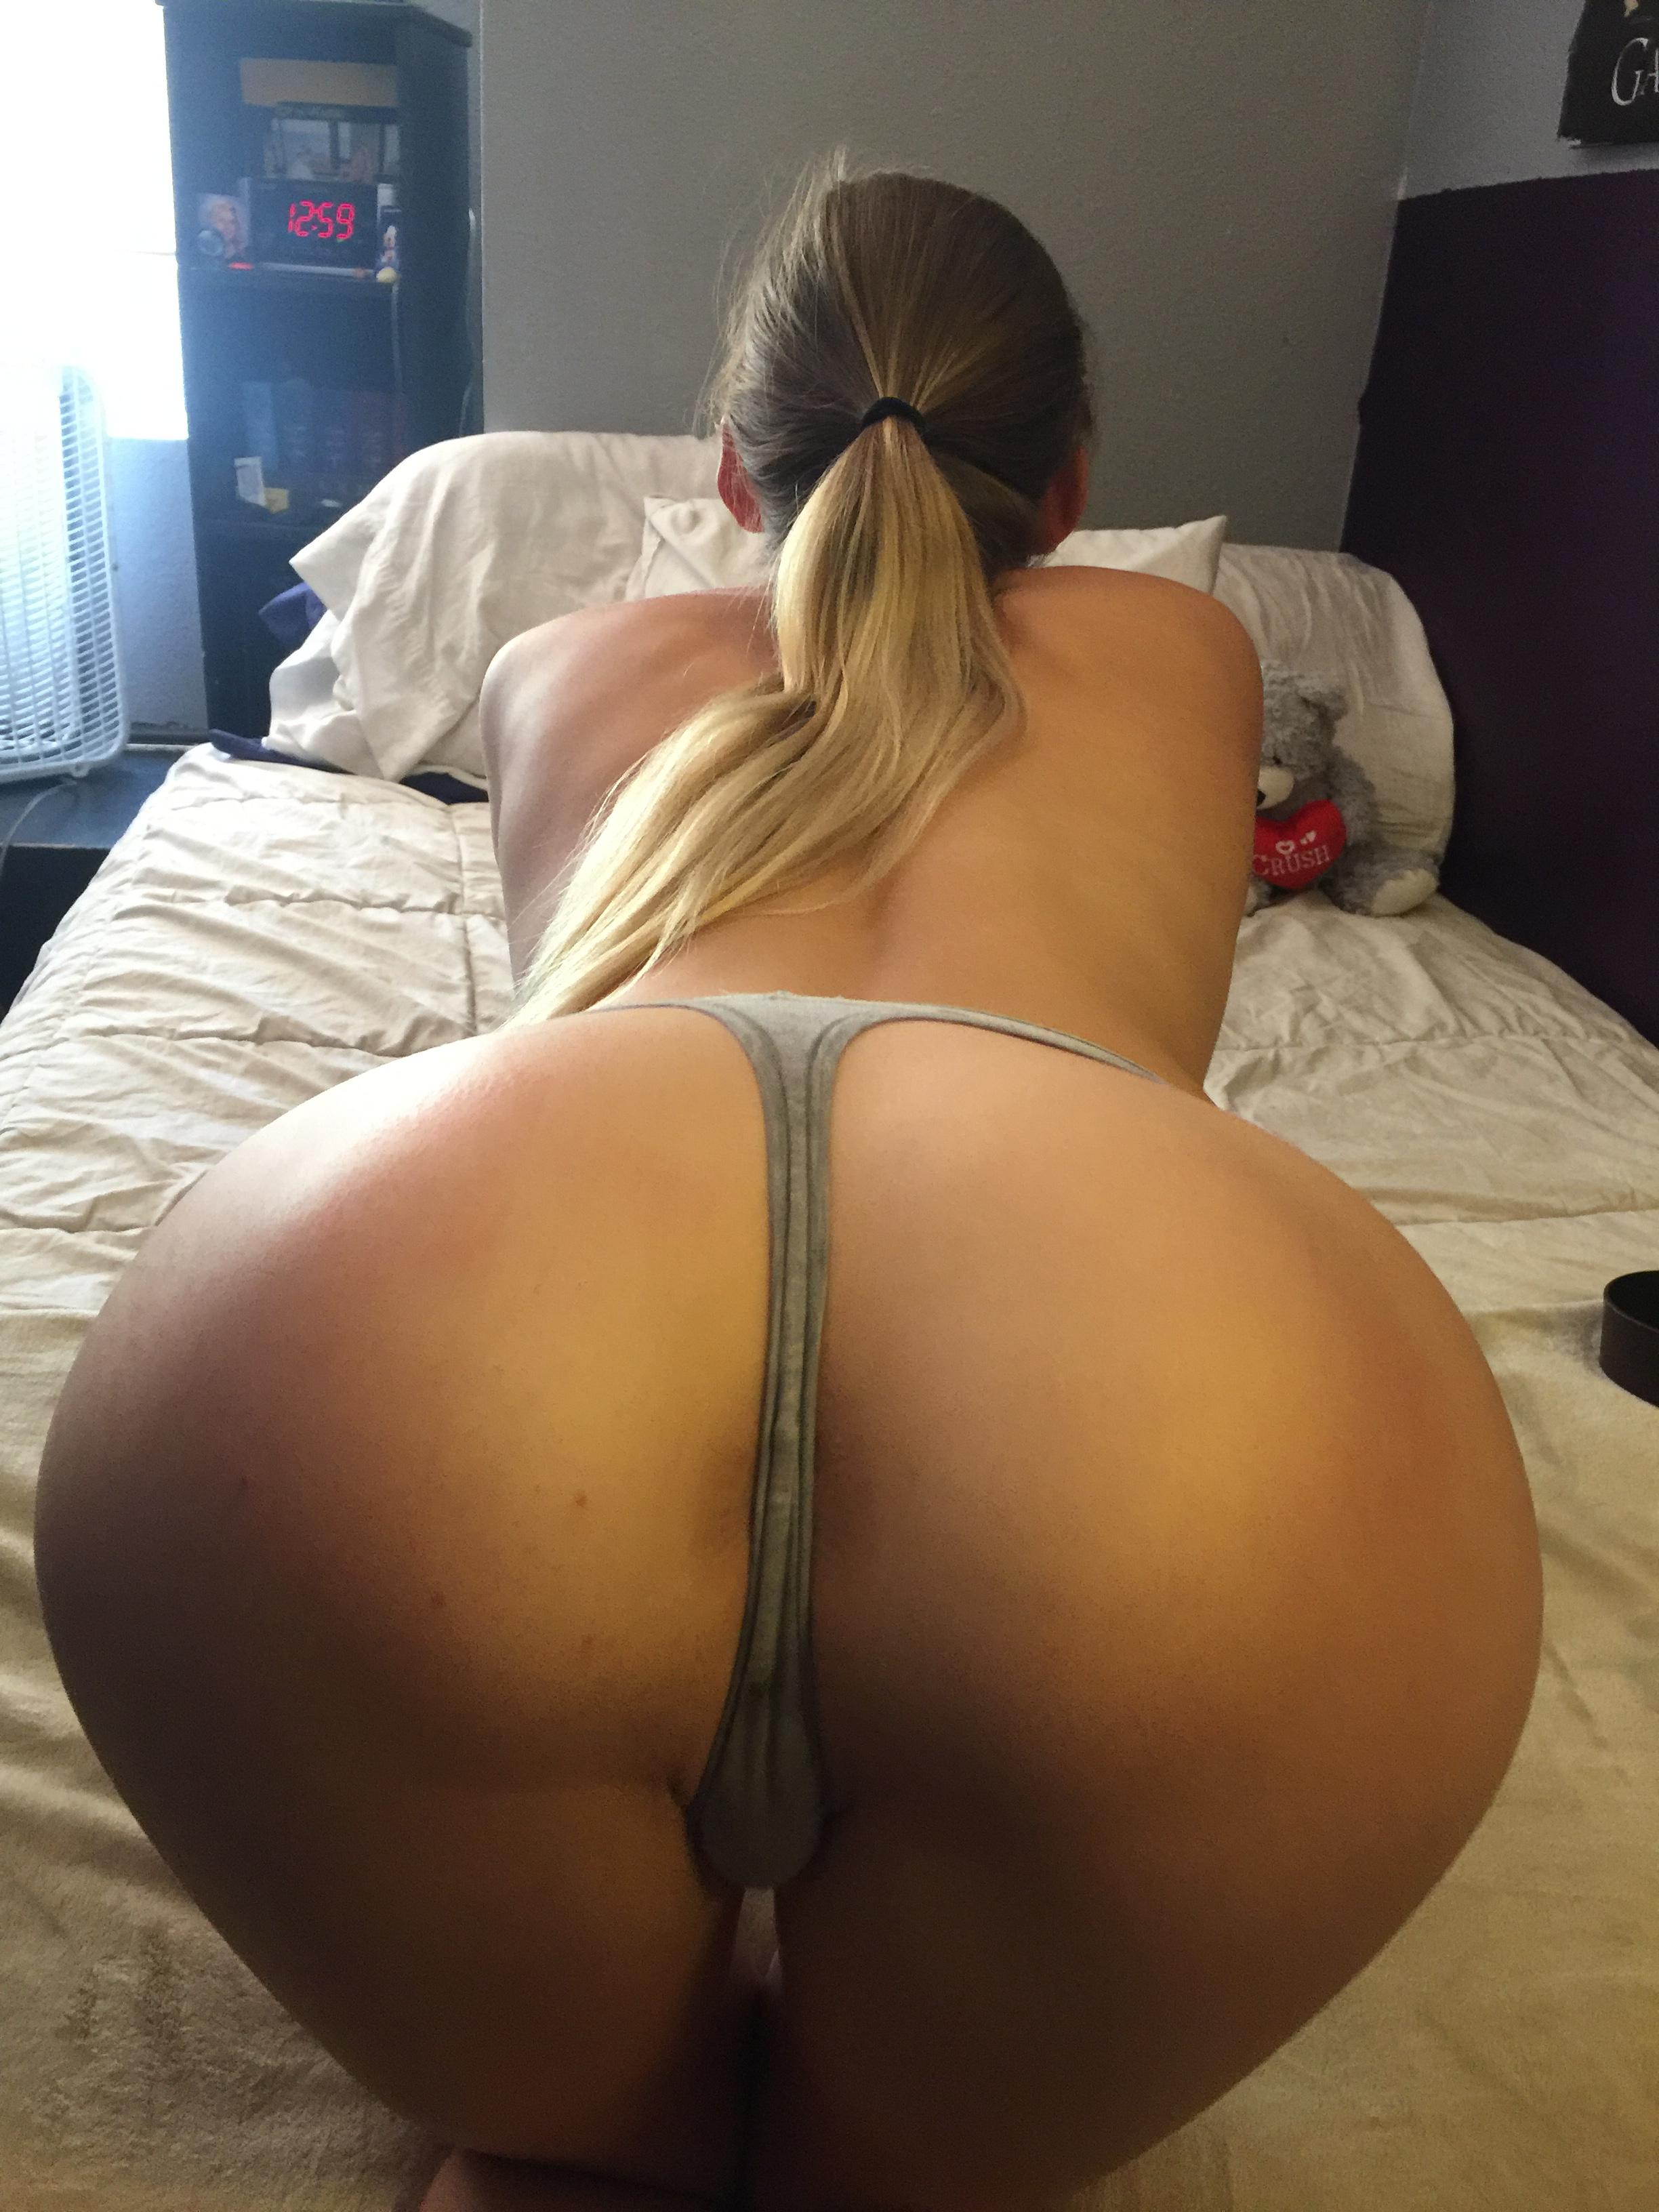 Doggy Style In Black Thong For Fan!!